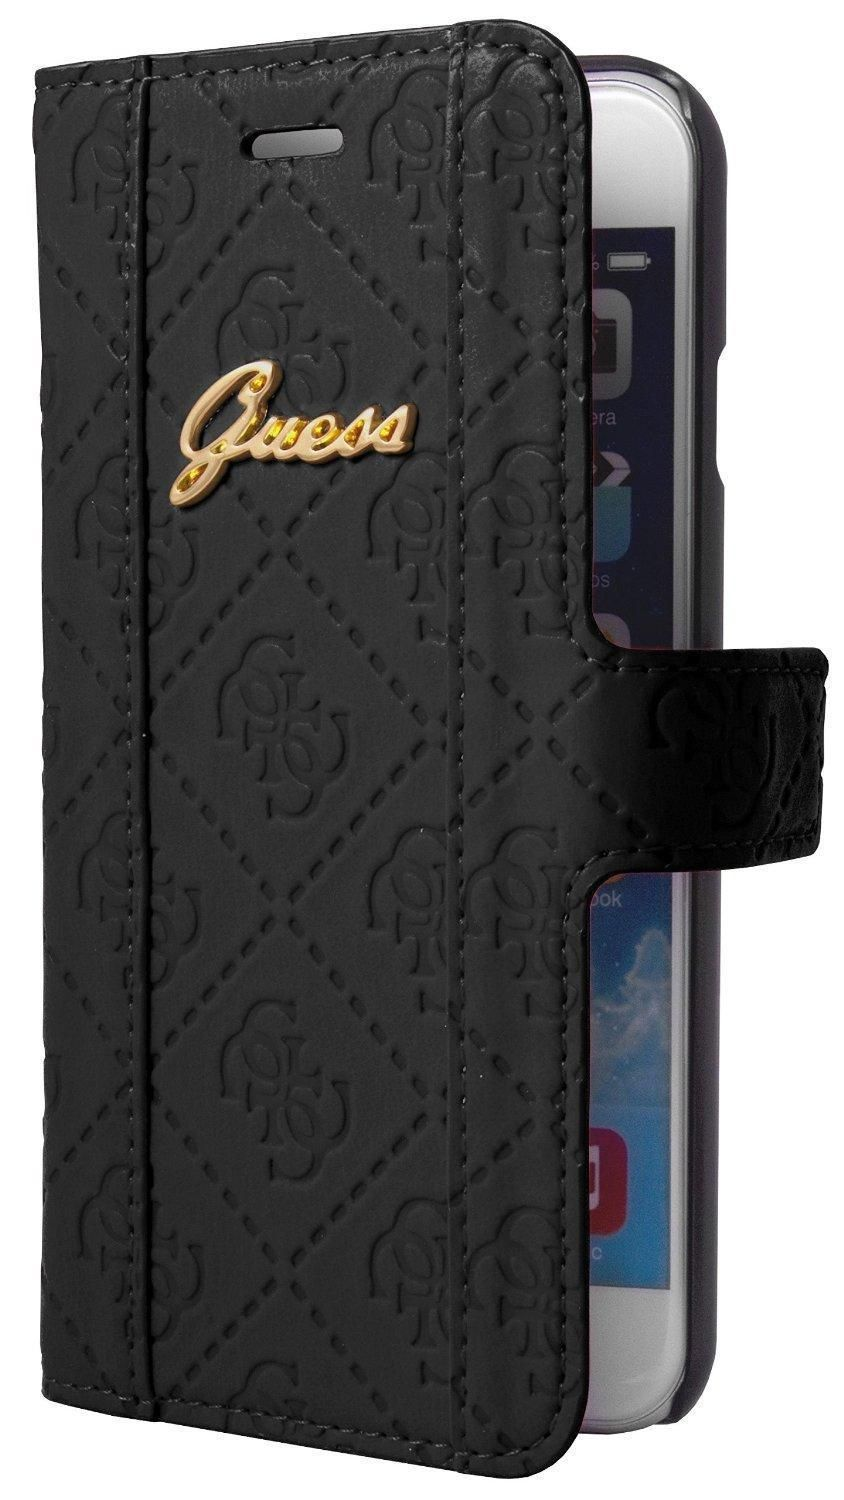 quality design df14b d971d Guess Scarlett Folio Case for iPhone 6 (S) Plus - Black | Guess in ...